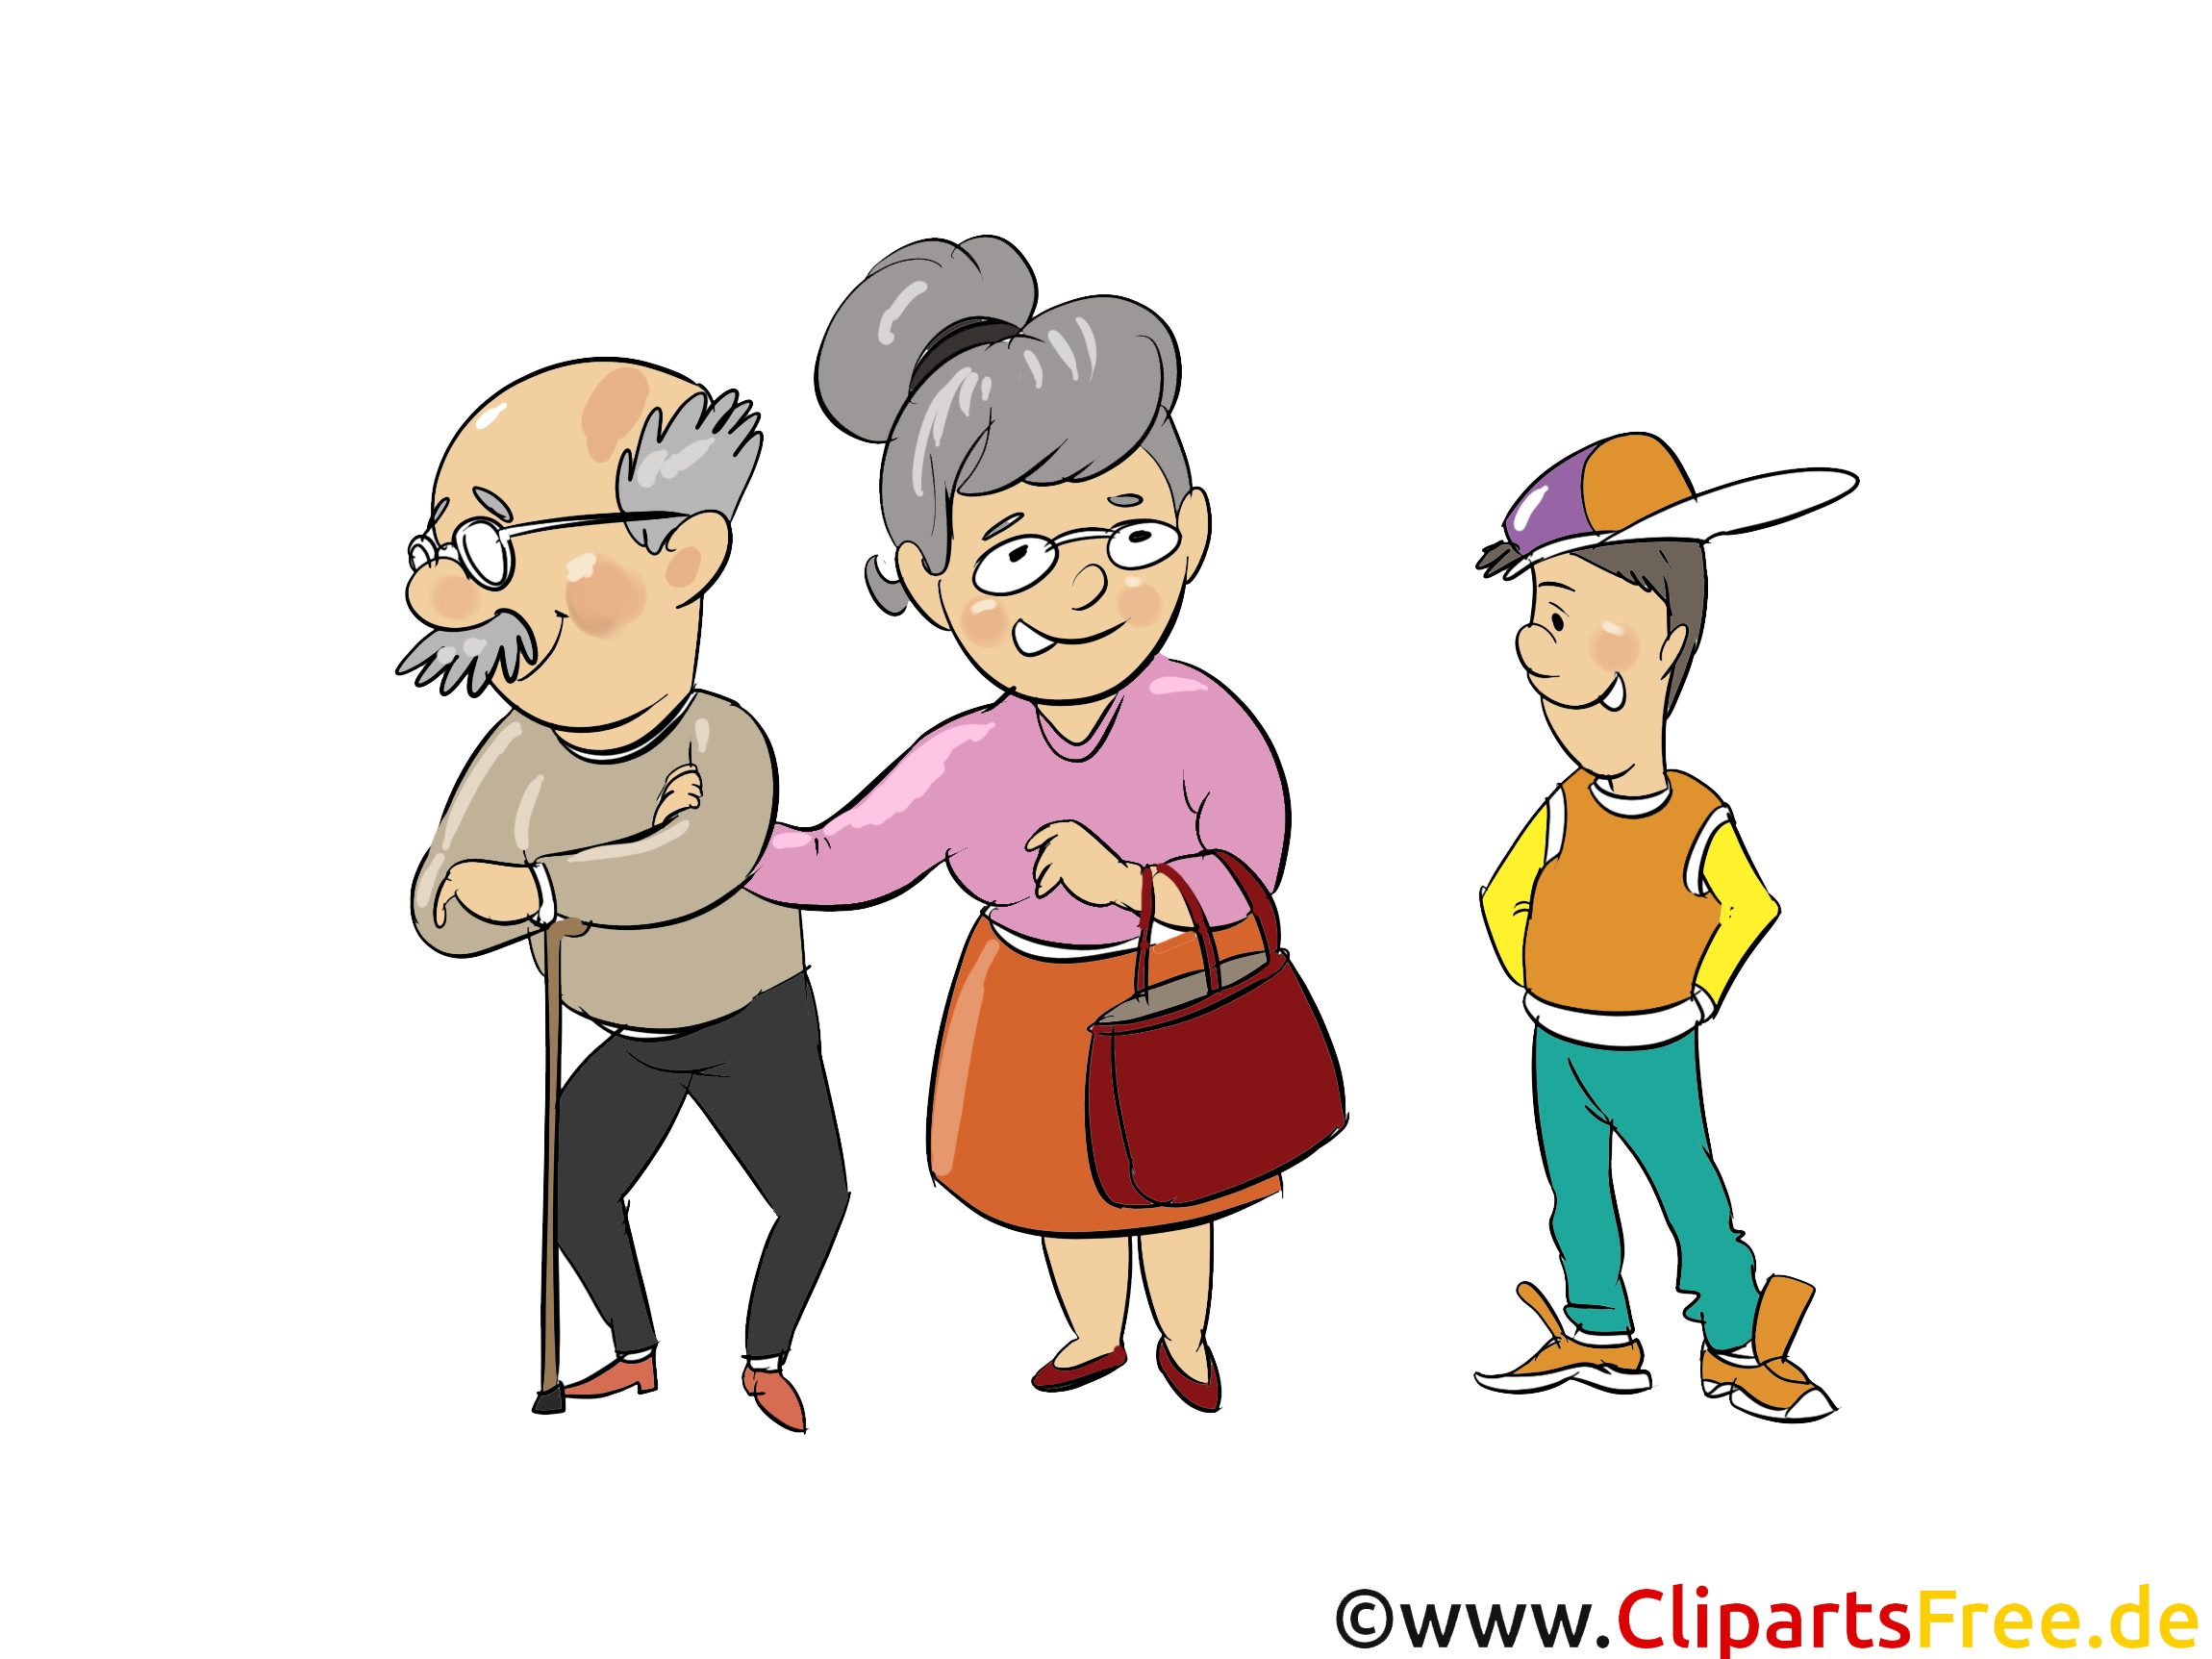 Vater und mutter clipart clipart black and white stock Menschen Bilder, Cliparts, Cartoons, Grafiken, Illustrationen ... clipart black and white stock